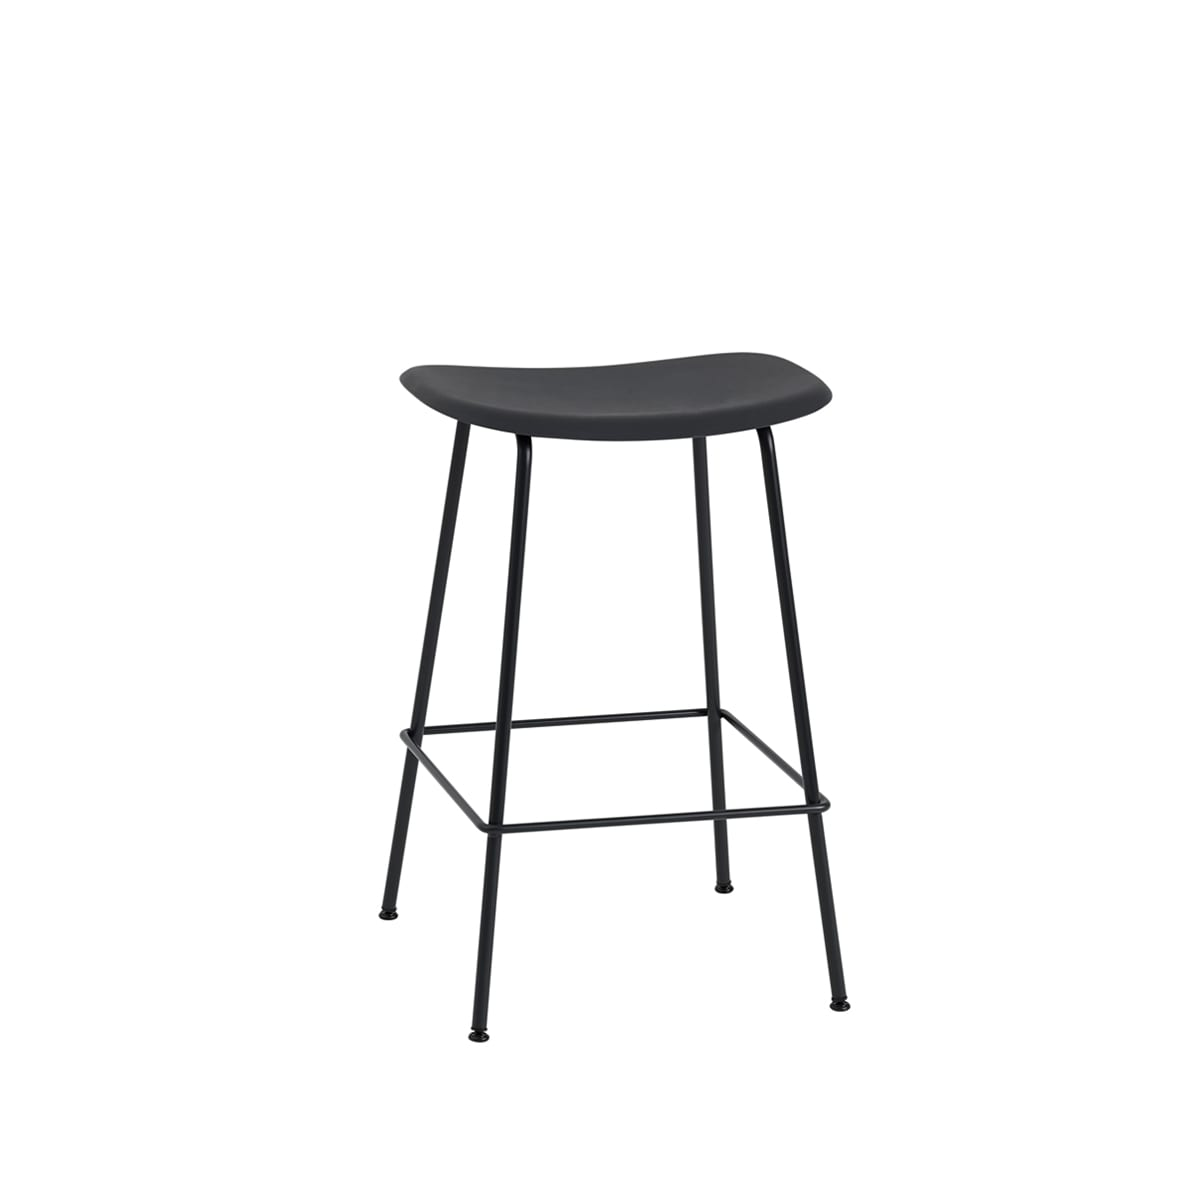 Fiber Bar Stool With Tube Base In Black Leather By Iskos